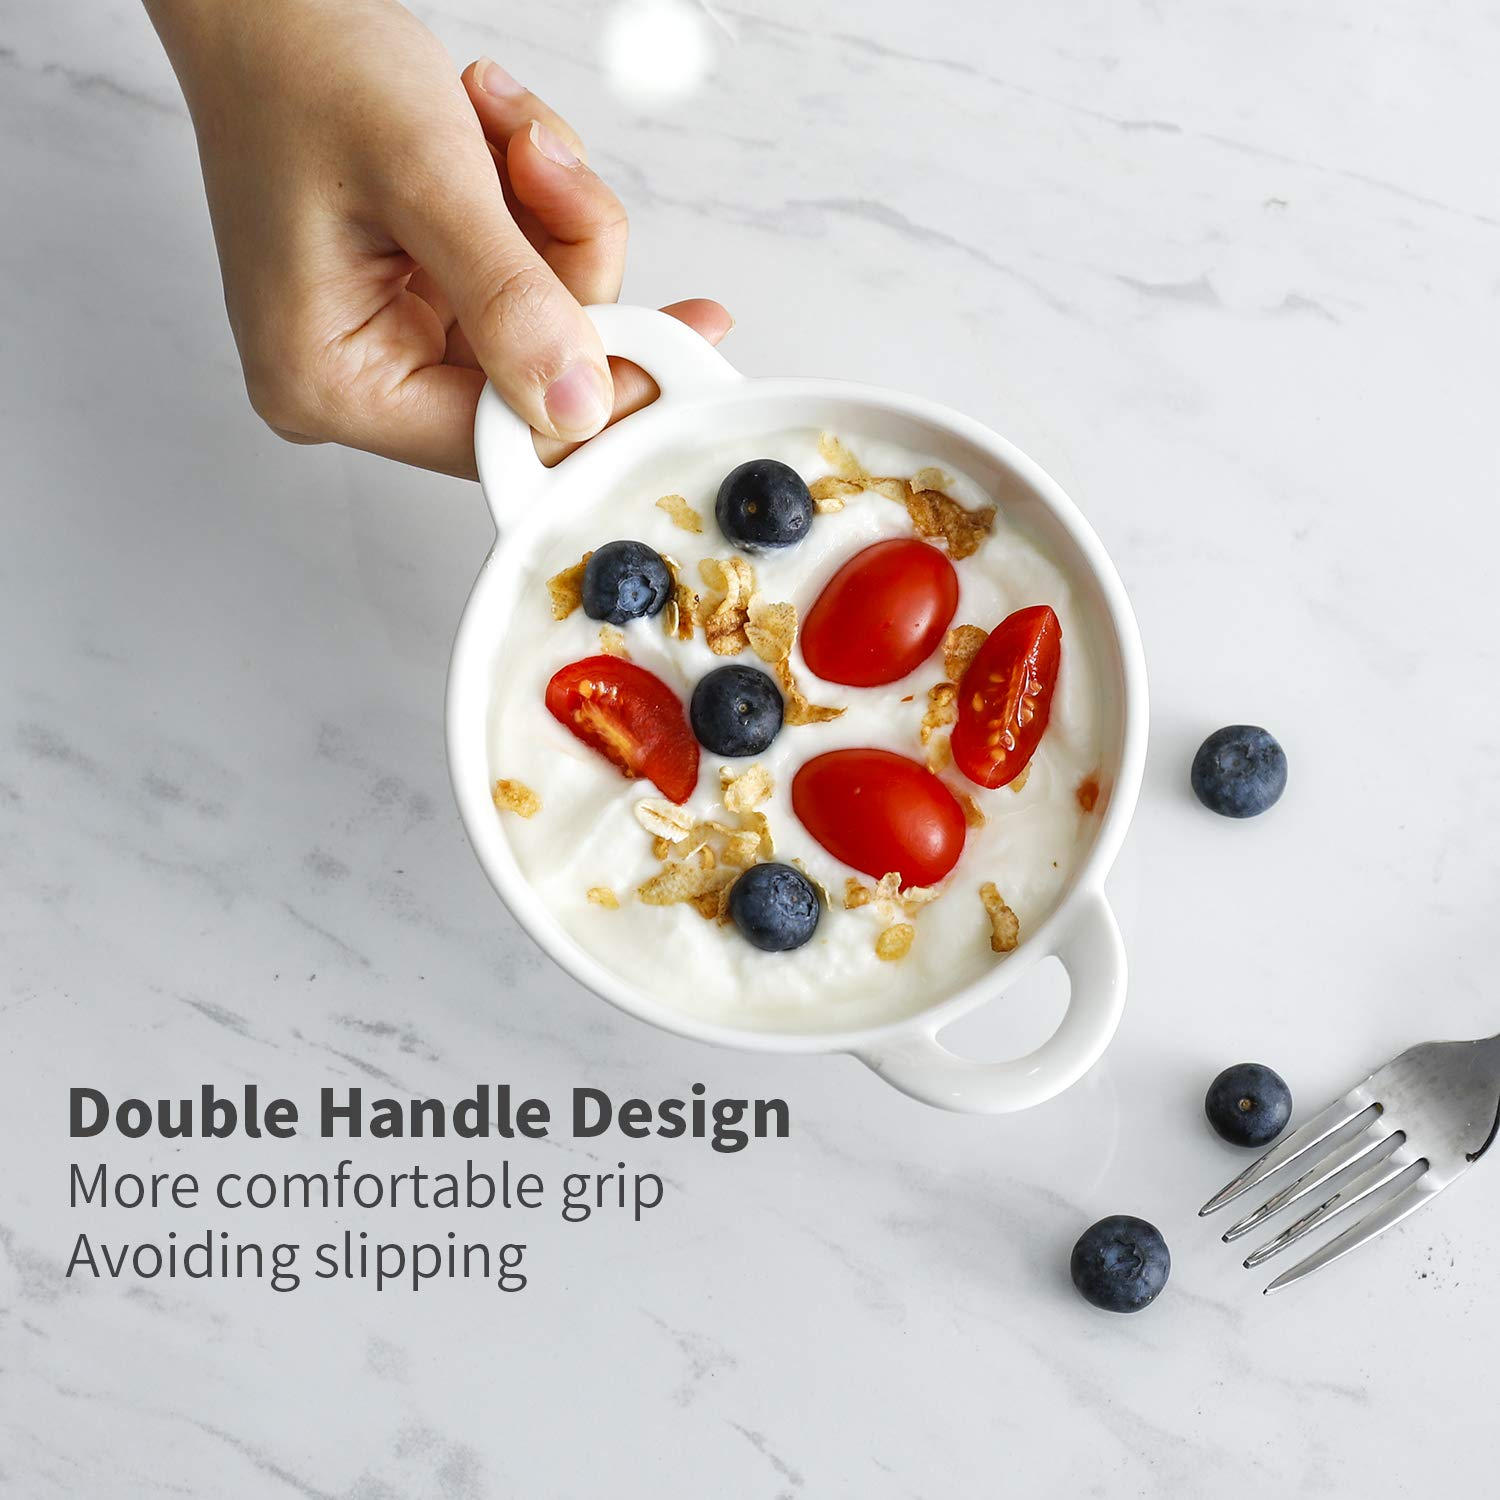 Sweese 5116 Porcelain Ramekins, 5 oz Ramekins for Baking, Round Creme Brulee Dish with Double Handle-Set of 6, White by Sweese (Image #4)